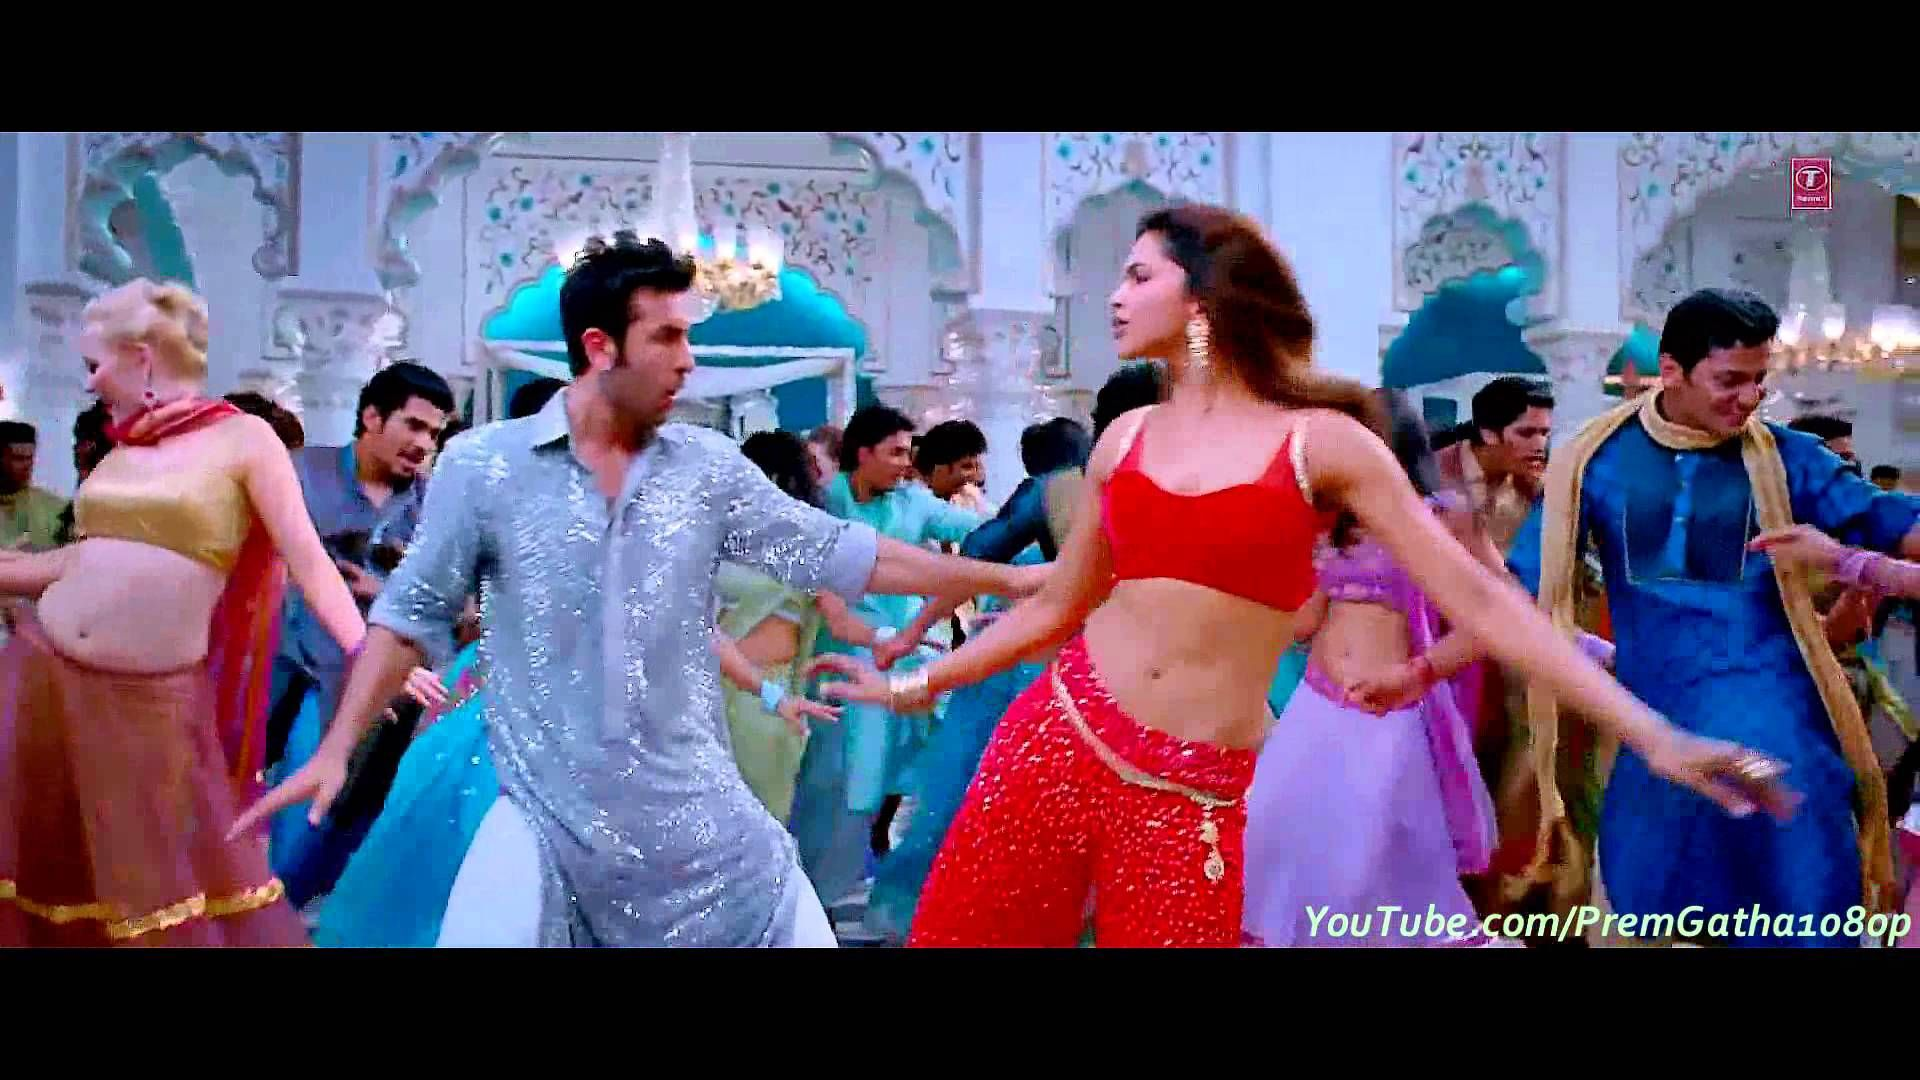 Divani Me Diwani Song Download Dilli Wali Girlfriend Yeh Jawaani Hai Deewani 1080p Hd Song